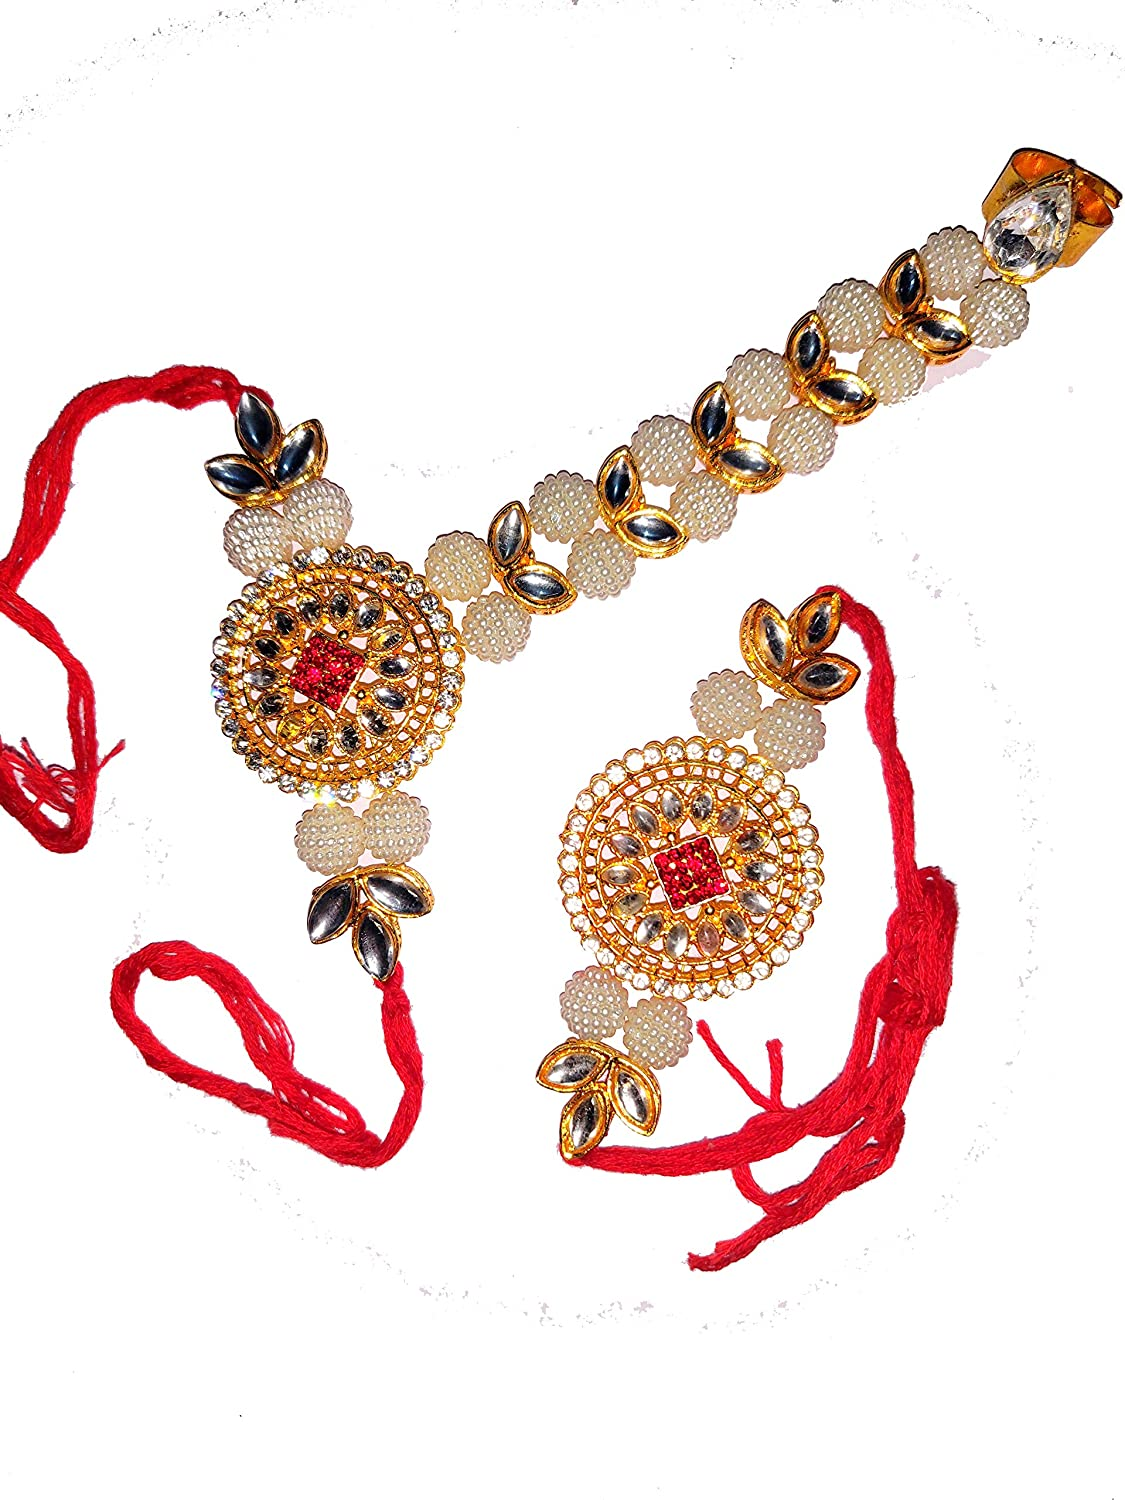 Rakhi Threads//Rakhi Bracelets//Rakhi for Brother Bhabhi on Indian Rakhi Rakshabandhan Festival Best Gift for Brother on Rakshabandhan Rakhi Bands 2 Pcs Rakhi for Bhaiya